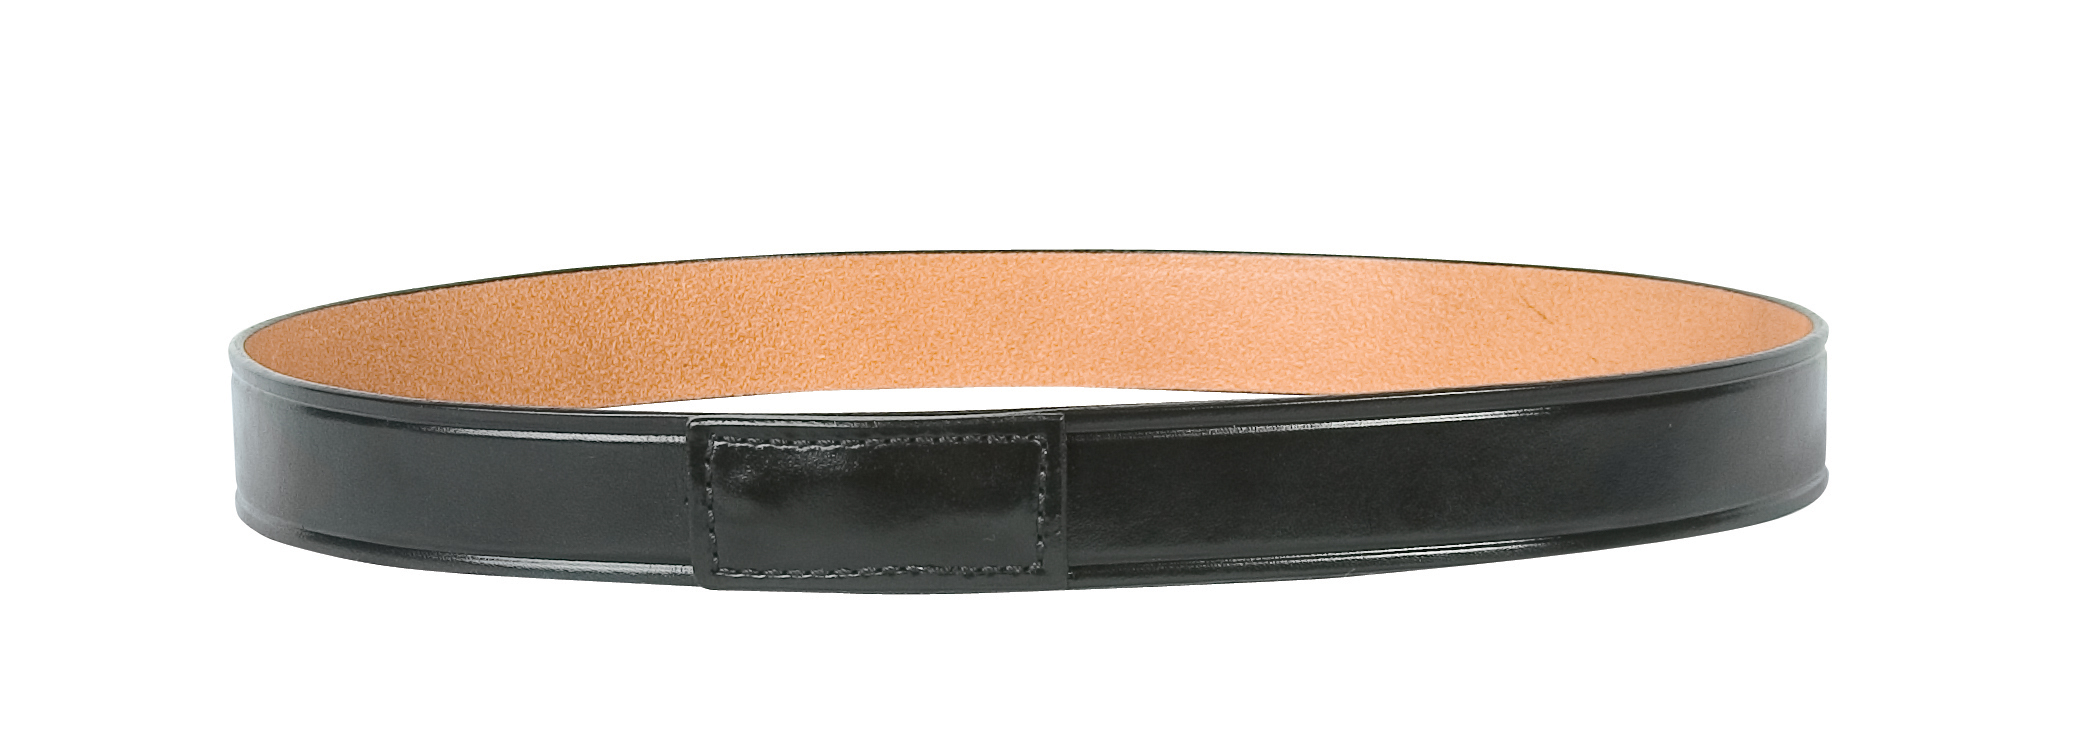 B113 BUCKLELESS TROUSER BELT 1 1/2""